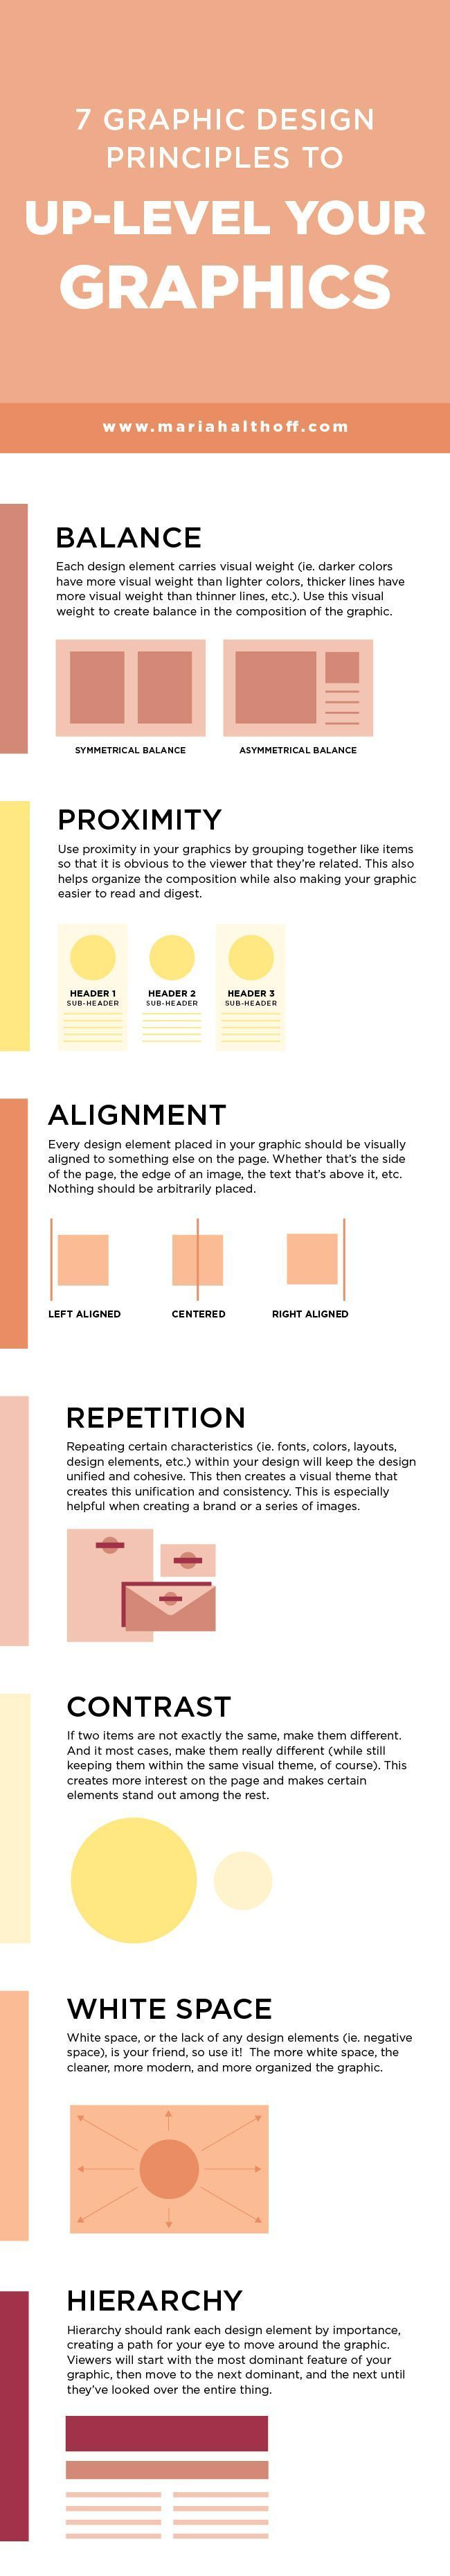 7 Graphic Design Principles to Up-Level your Graphics